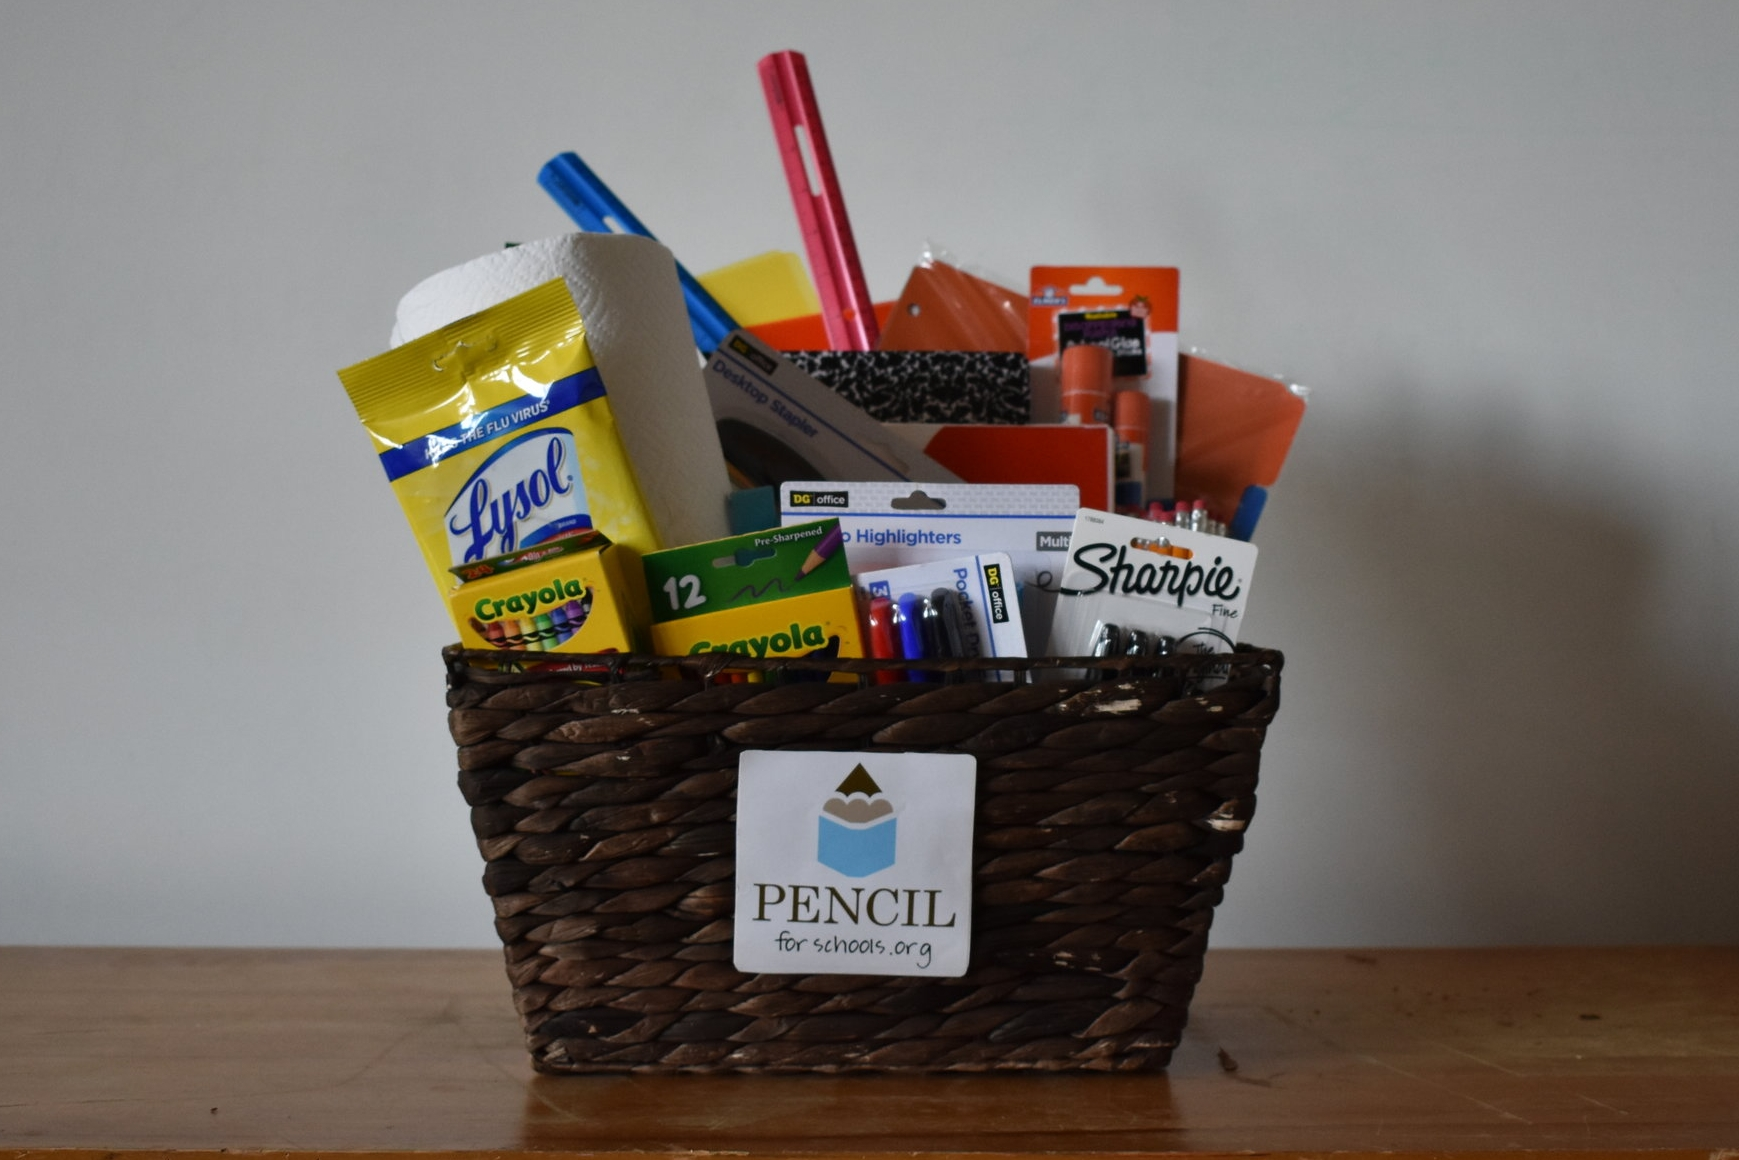 Most-needed school supplies for the LP PENCIL Box